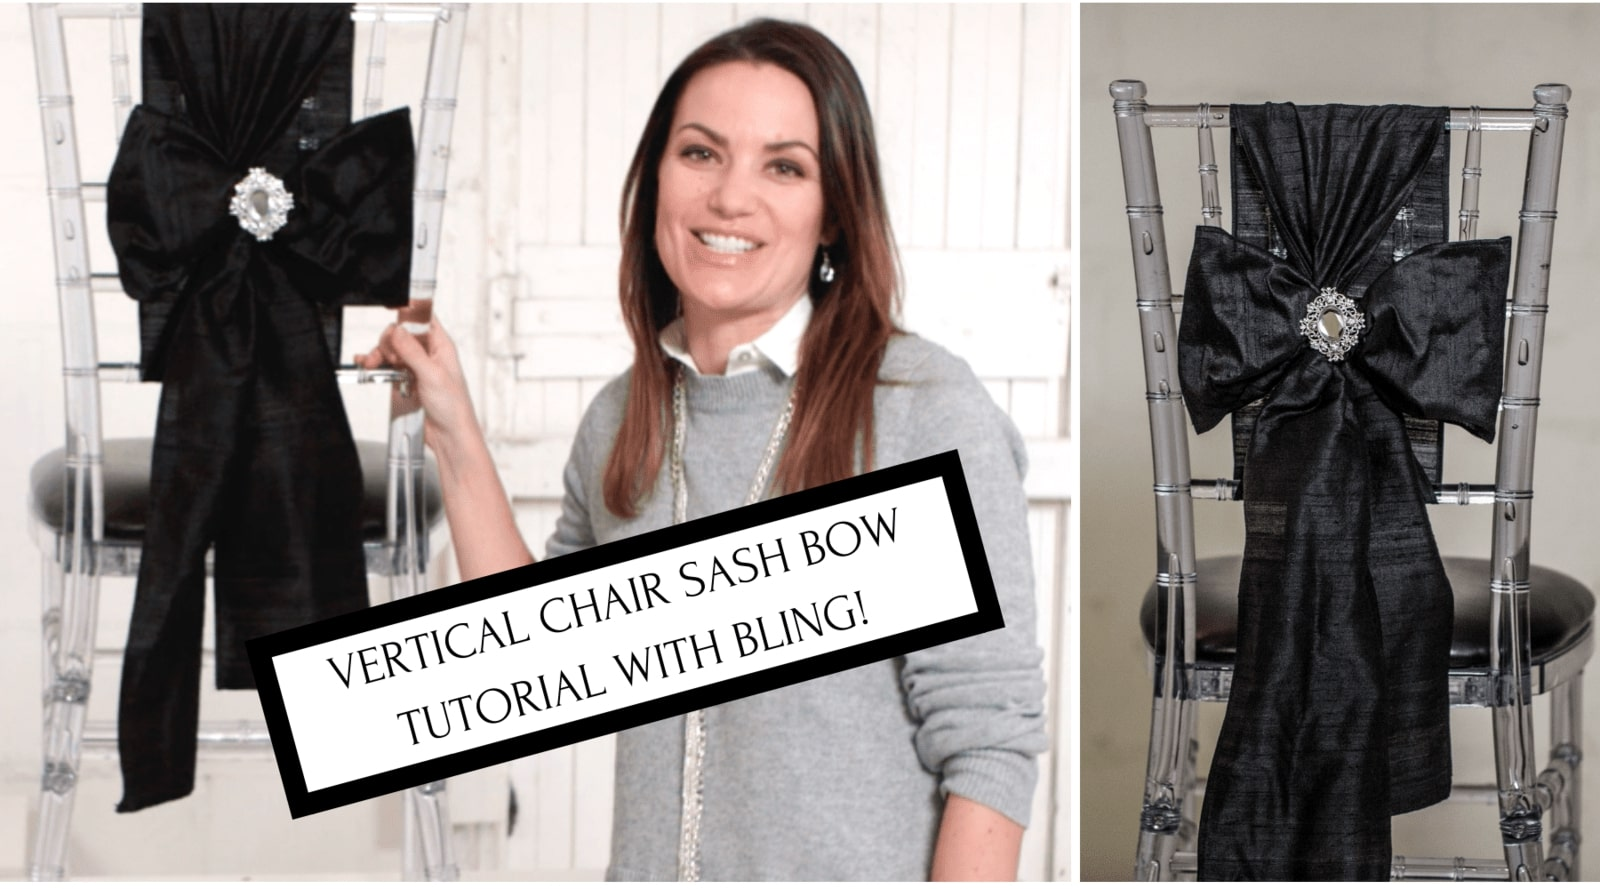 How to Tie a Vertical Chair Sash